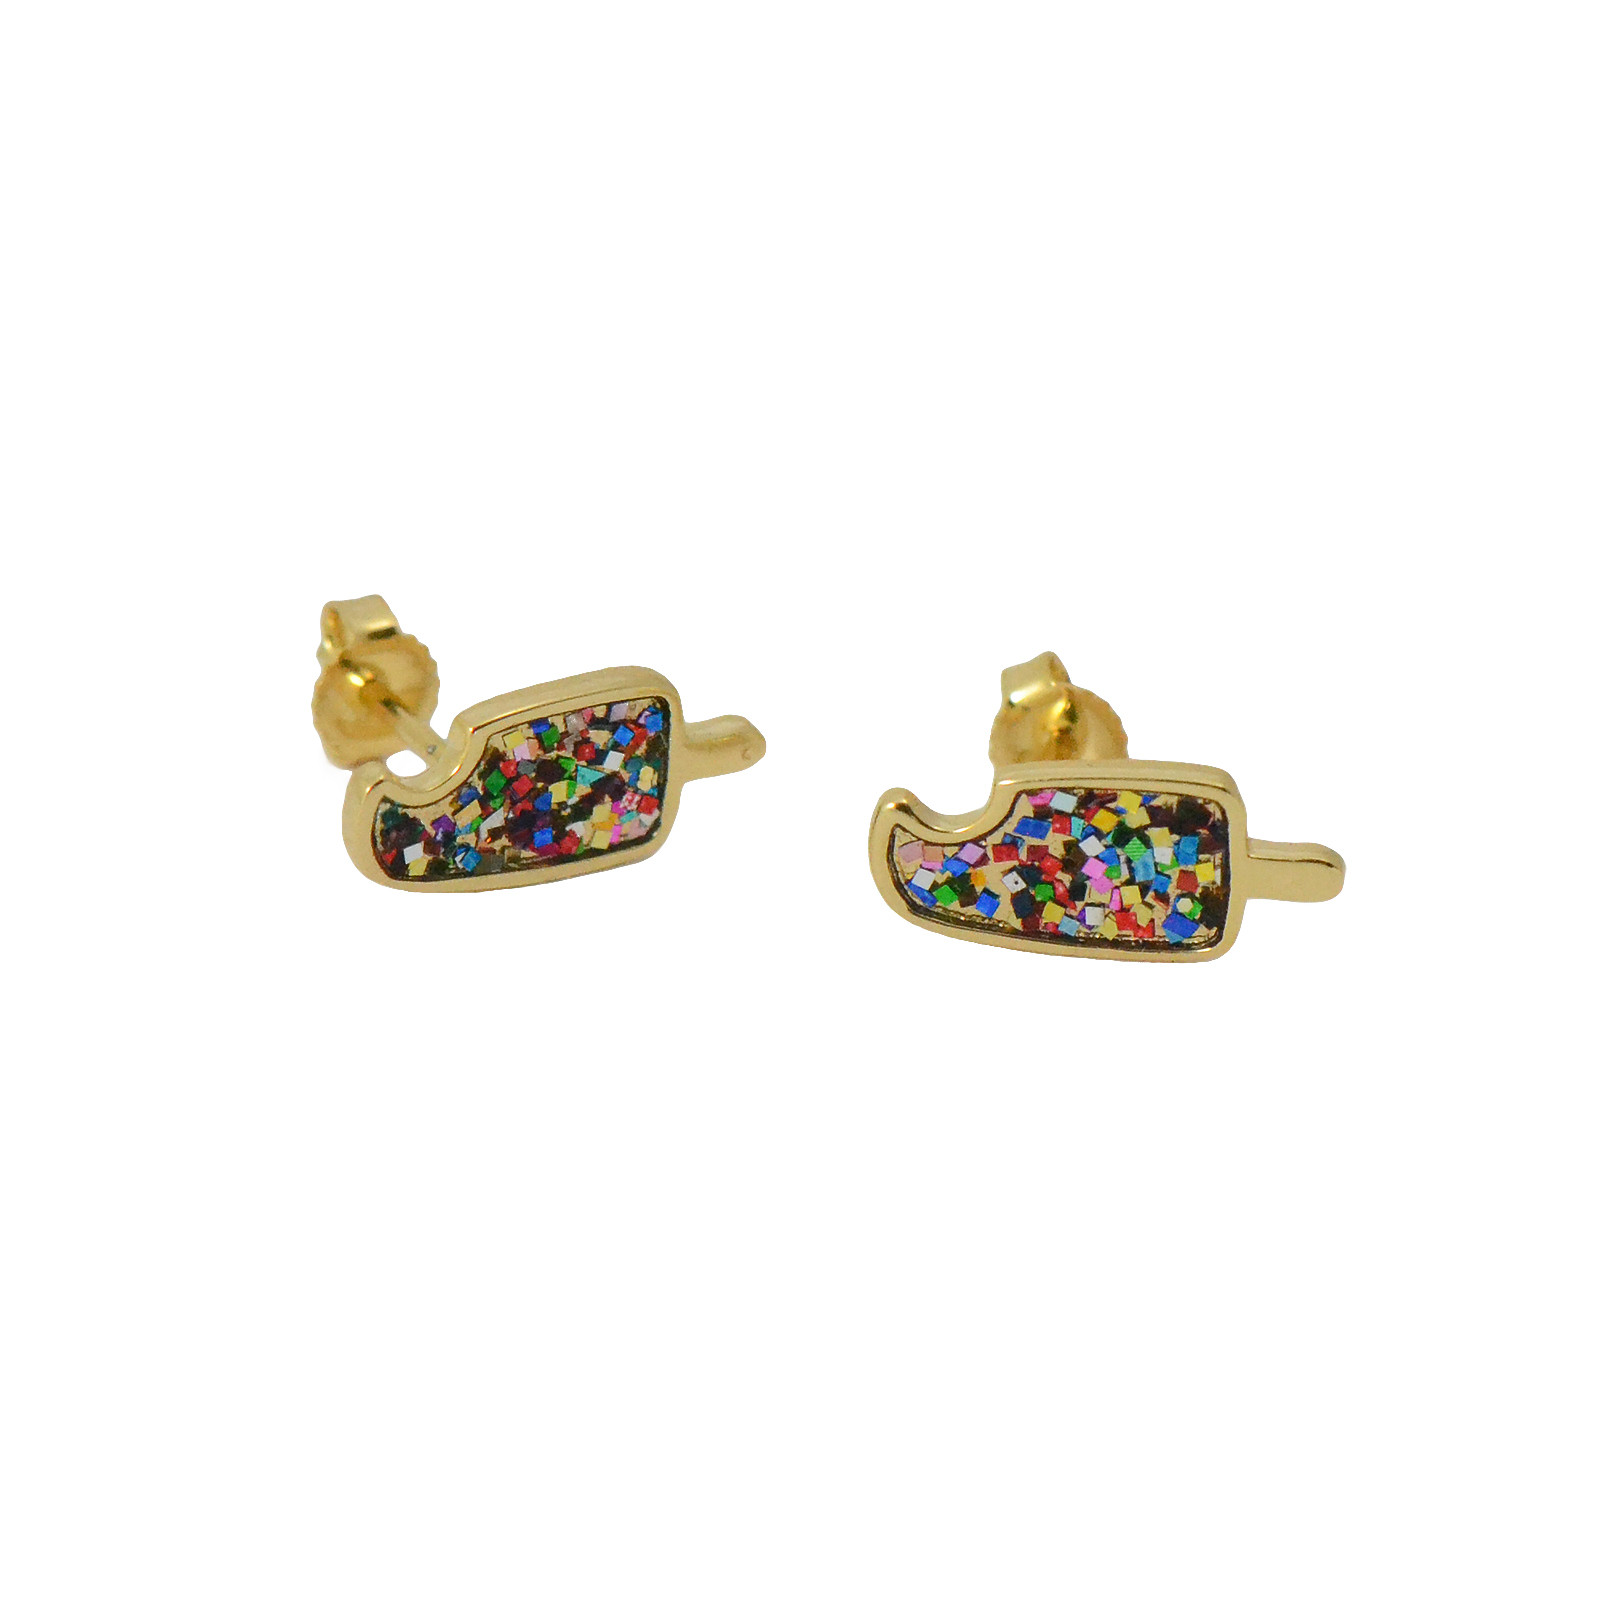 popsicle studs with glittery enamel